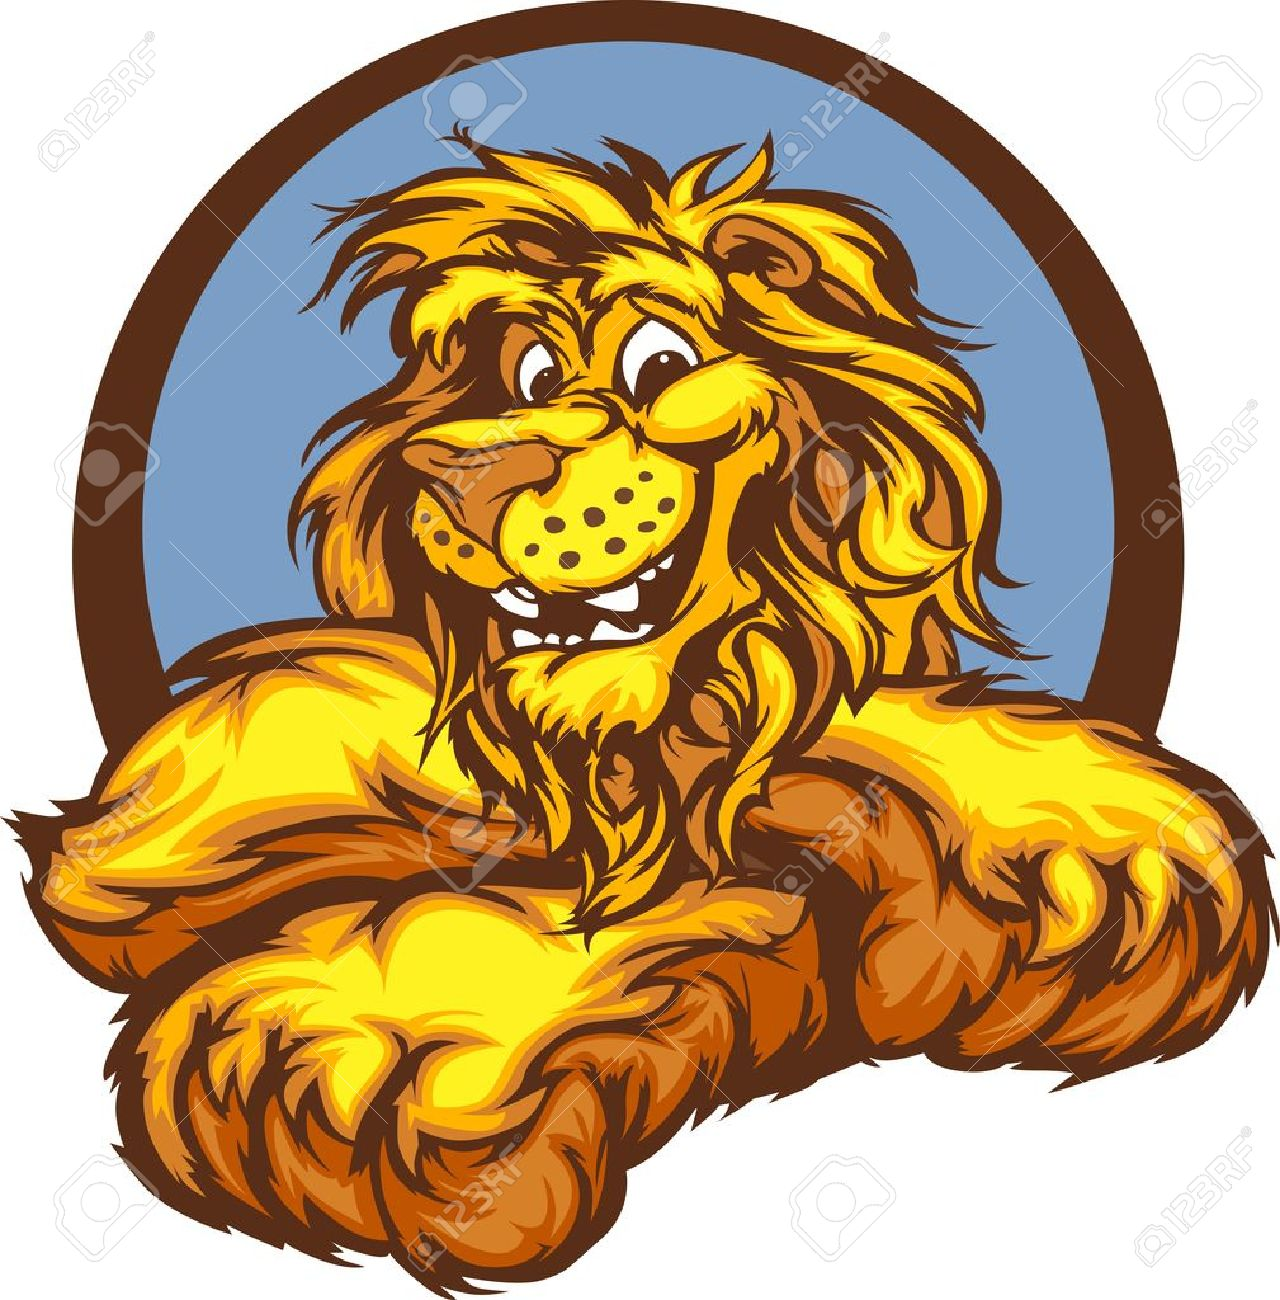 Lion with Paws Smiling Mascot Illustration Stock Vector - 11696904